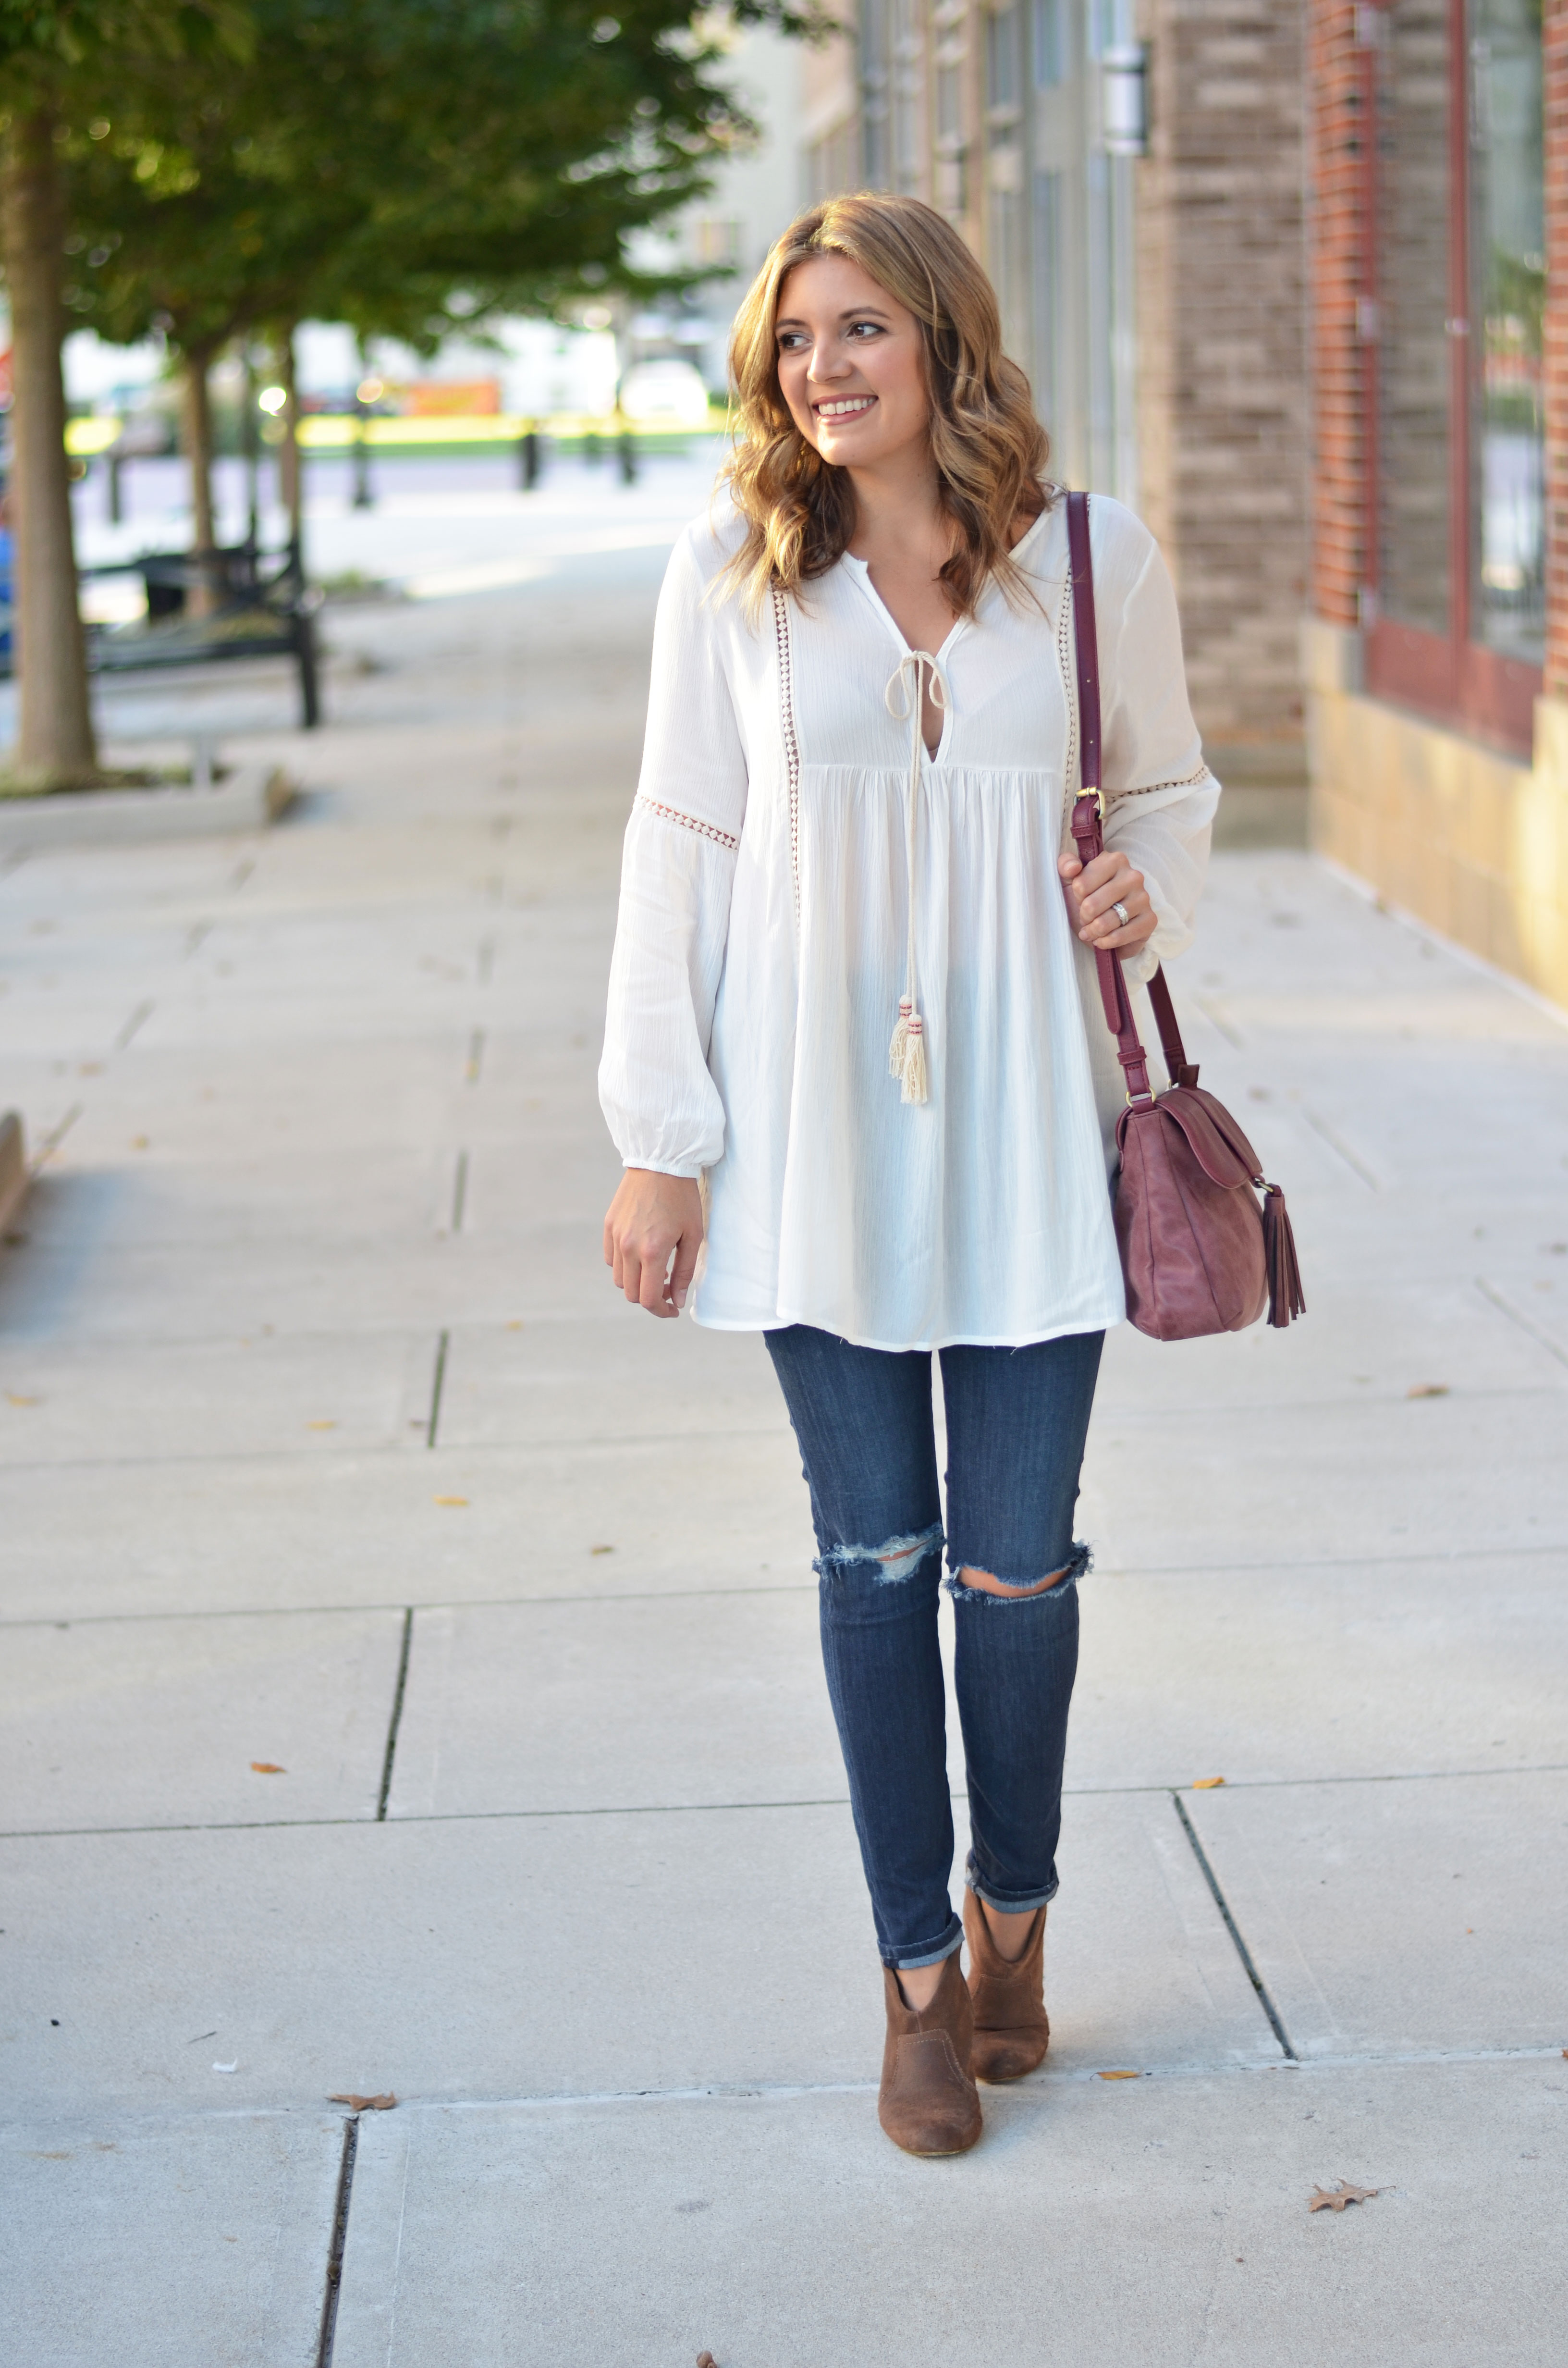 cute peasant top outfit - fall style - white peasant top with distressed skinny jeans and tan suede booties | www.bylaurenm.com